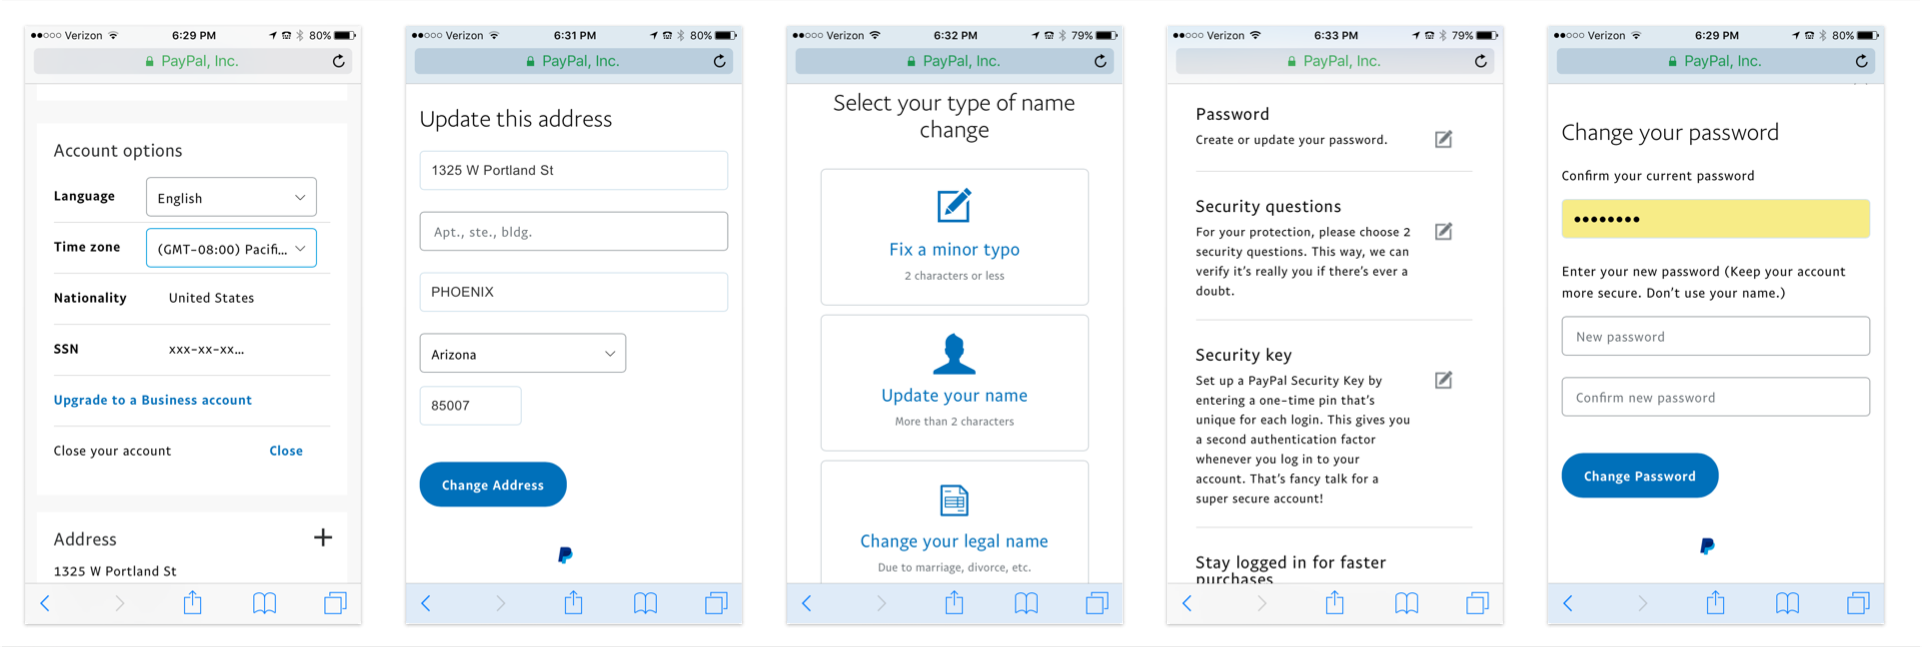 Some of the many settings including address, name change, and password change